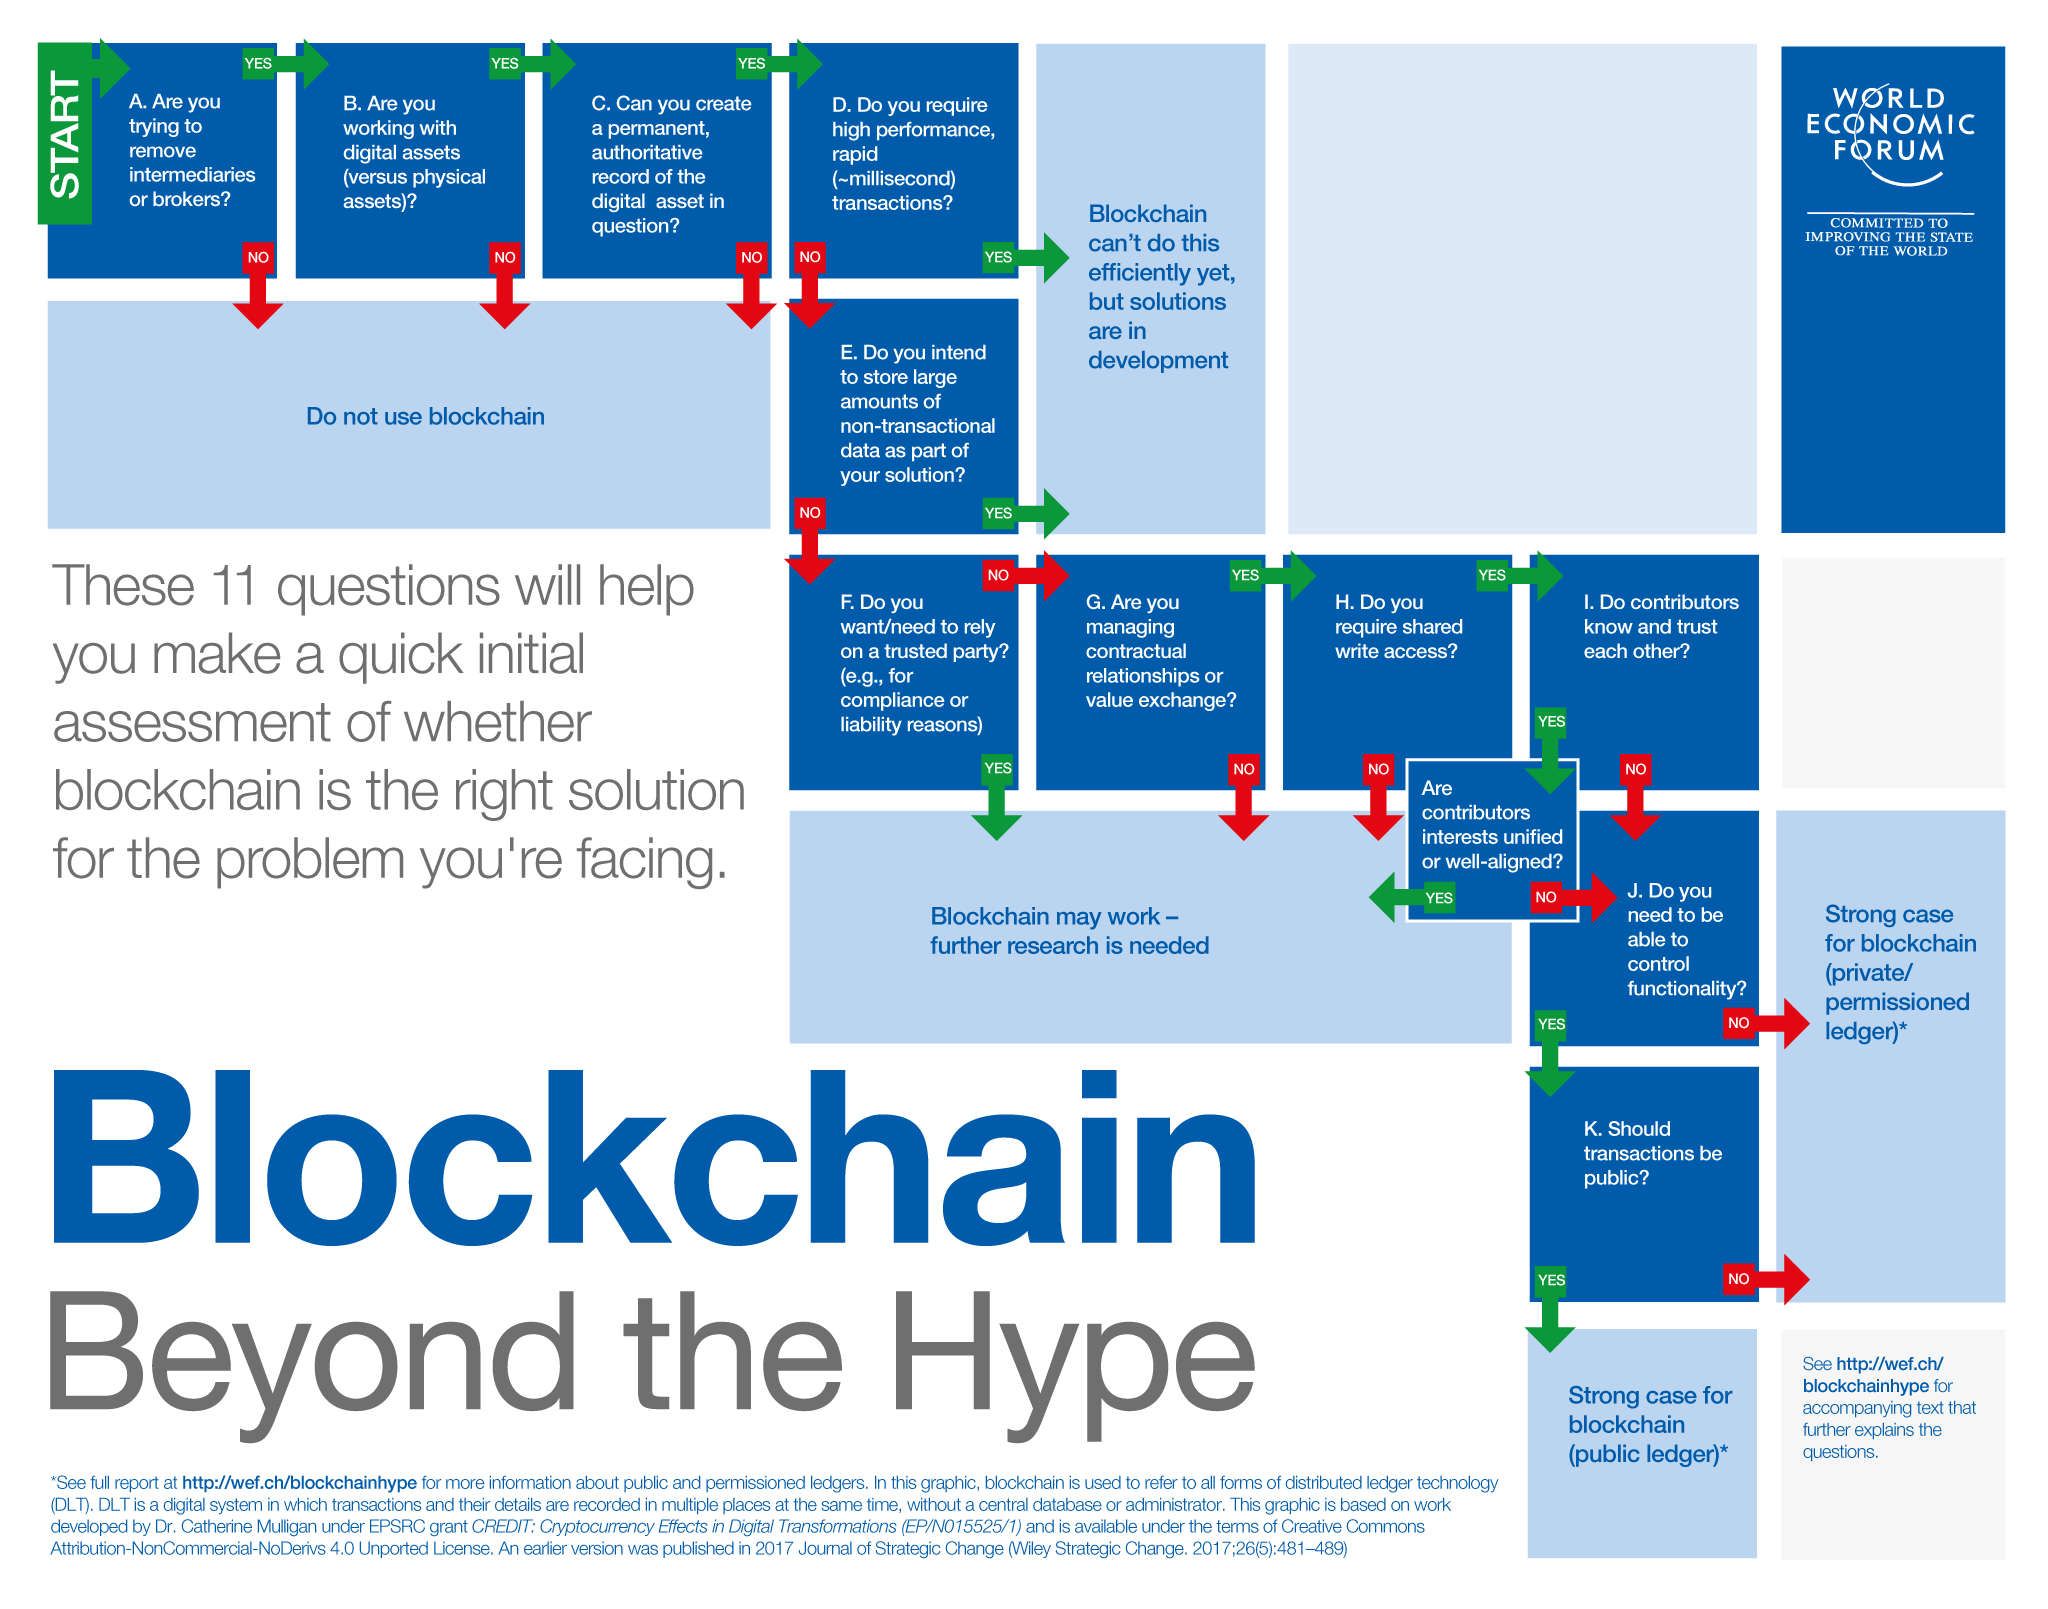 Blockchain Is An Innovative Solution But It Is Not The Solution To All Problems Blockchain Blockchain Technology This Or That Questions